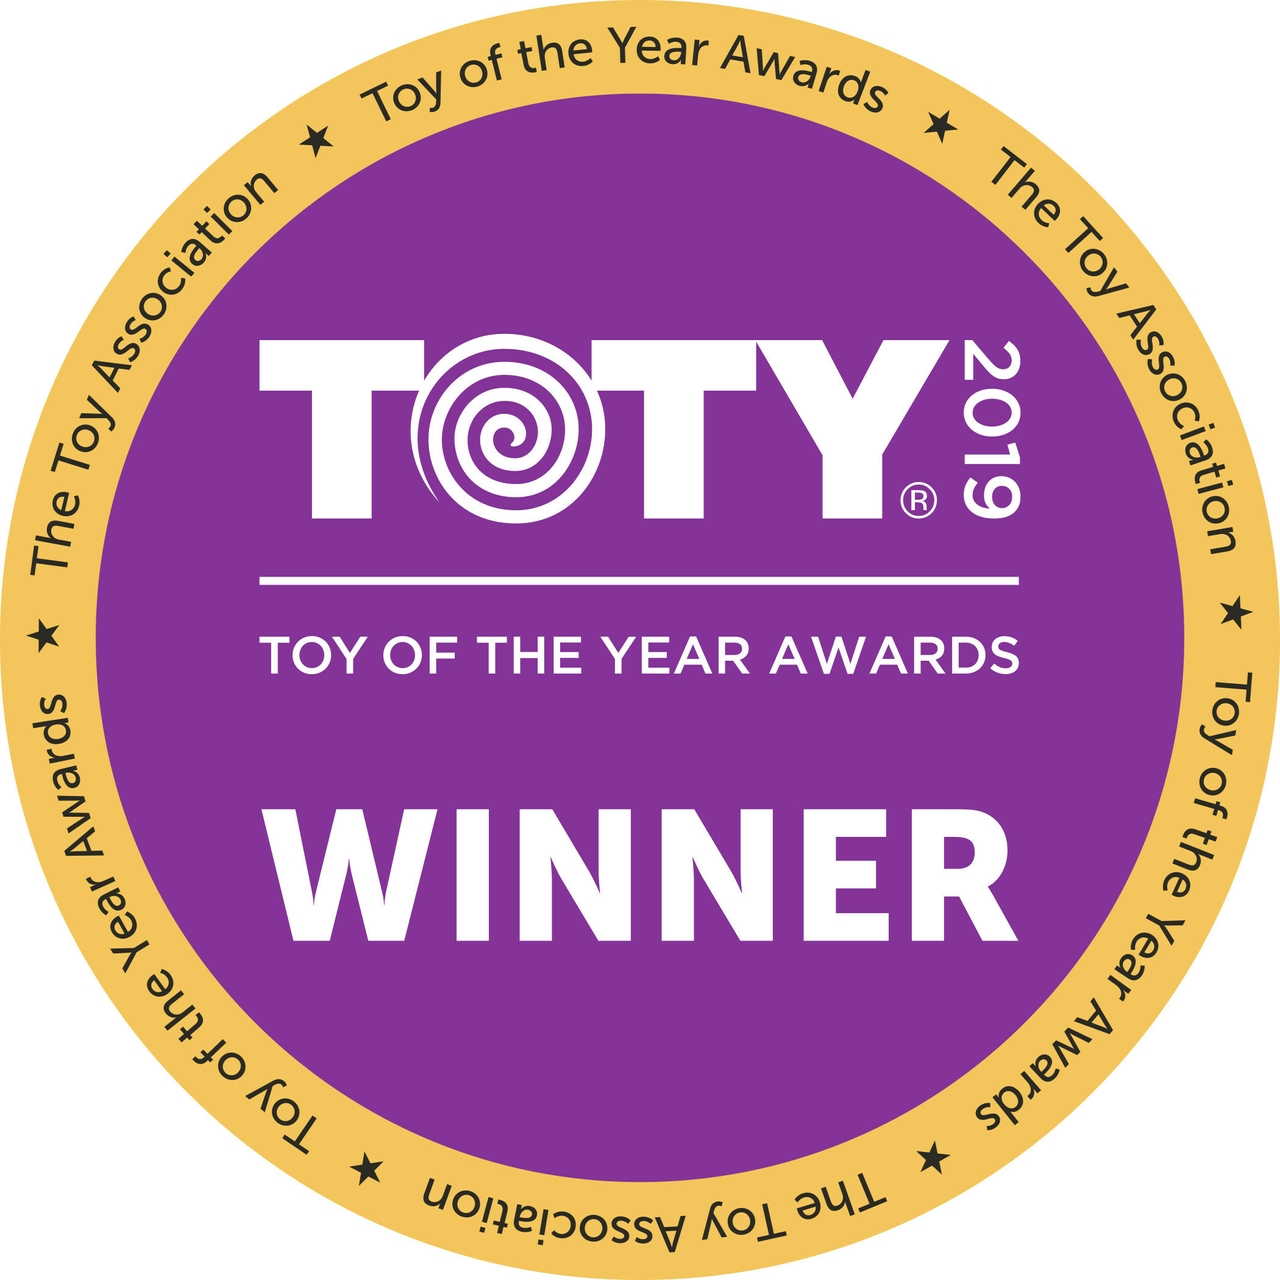 Mattel Wins Coveted Toy of the Year Awards for the Fisher-Price® Laugh & Learn® Smart Learning Home(TM) and Fisher-Price Think & Learn Rocktopus(TM)